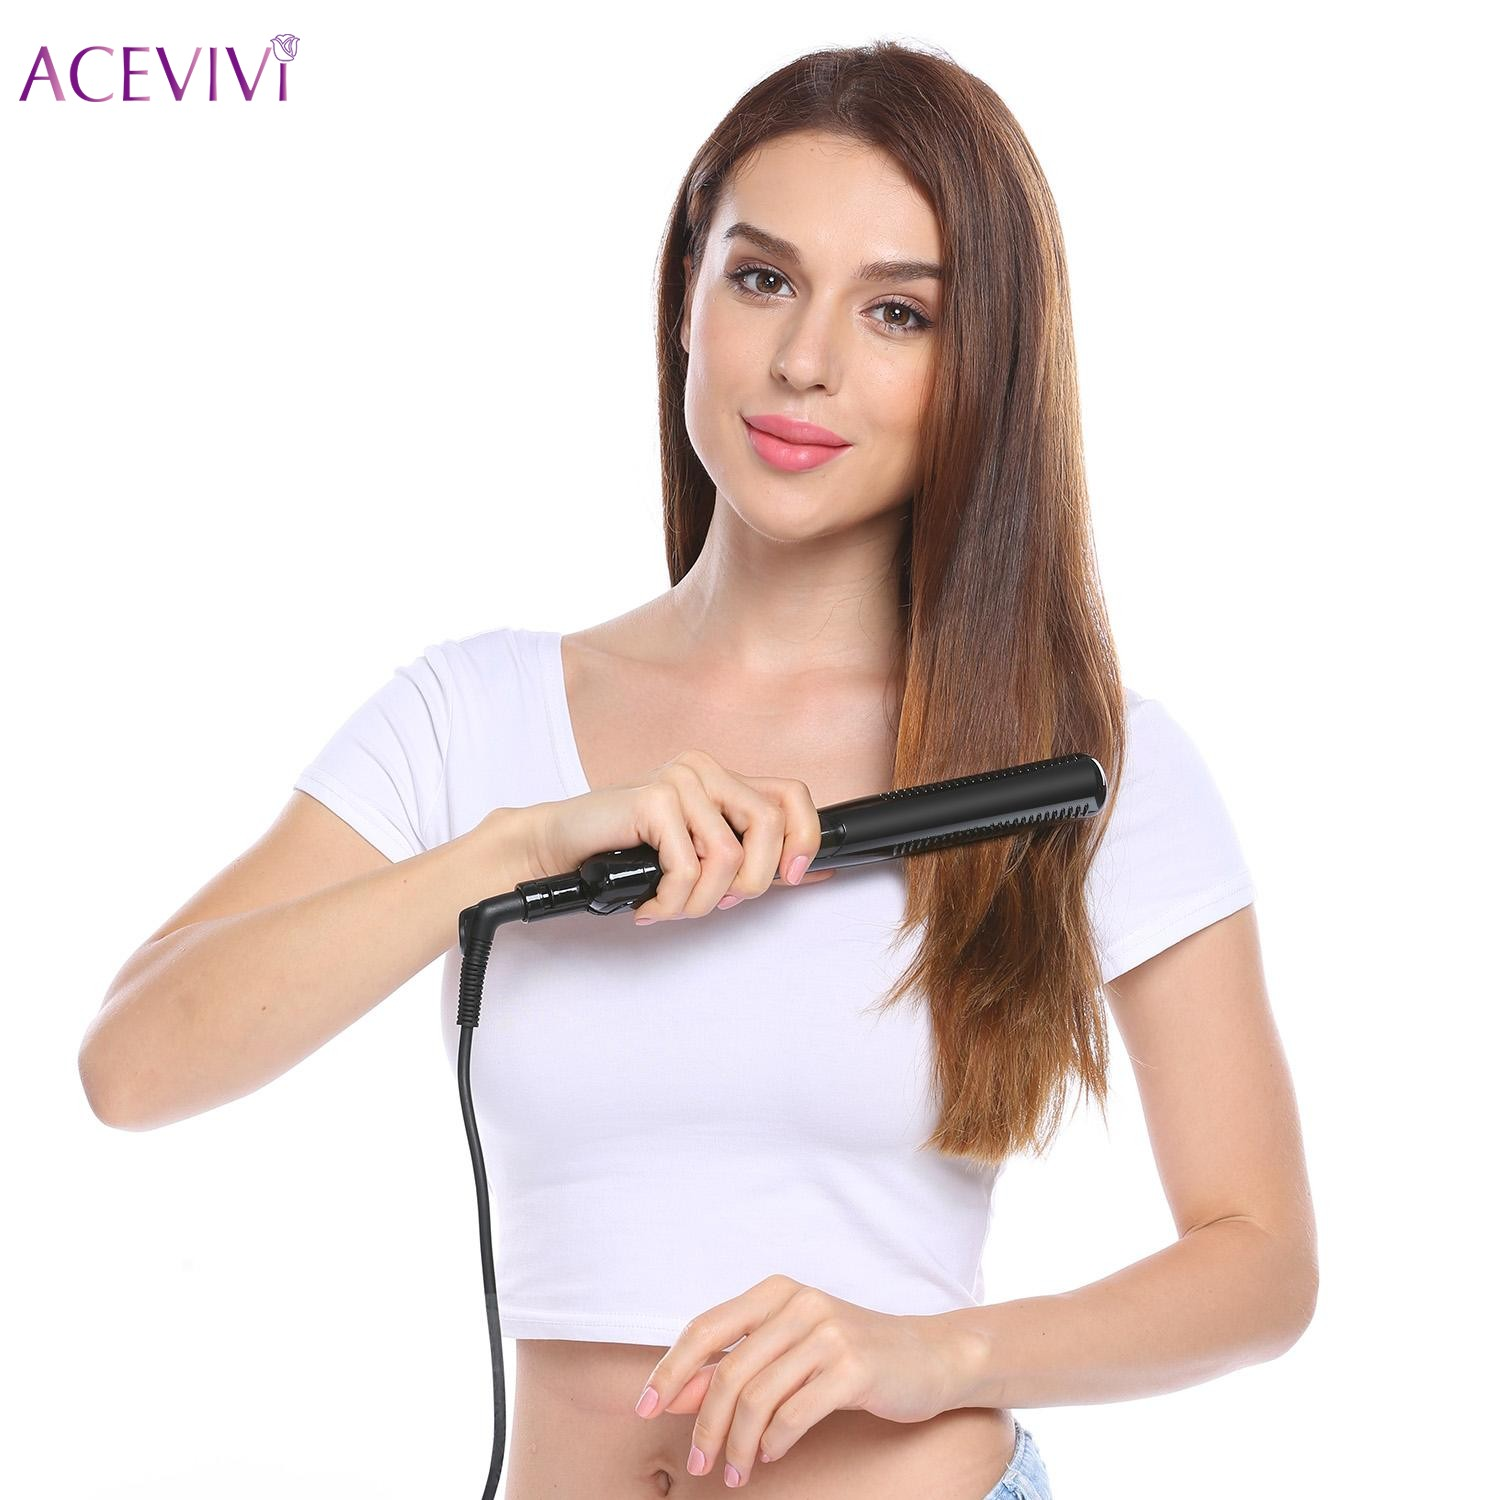 ACEVIVI MCH Heating Straightening Hair Irons Automatic Straight Hair Temperature Display Electric Fast Hair Straightener Tools professional styling tool lcd display titanium plates straightening iron mch hair straightener high temperature fast heating